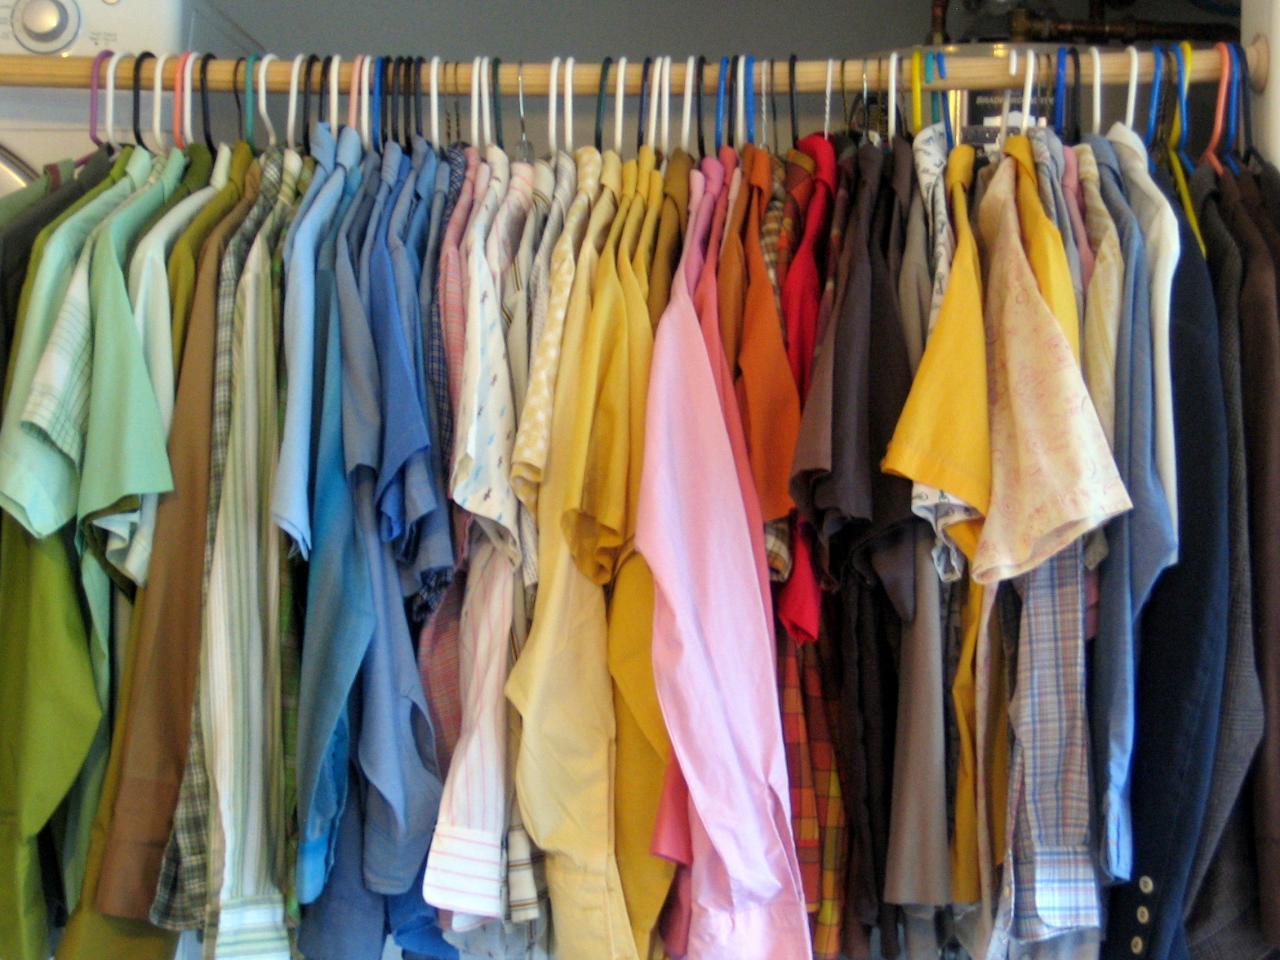 Looking for ways to turn your closet into cash? ... photo by CC user smartwentcrazy on Flickr